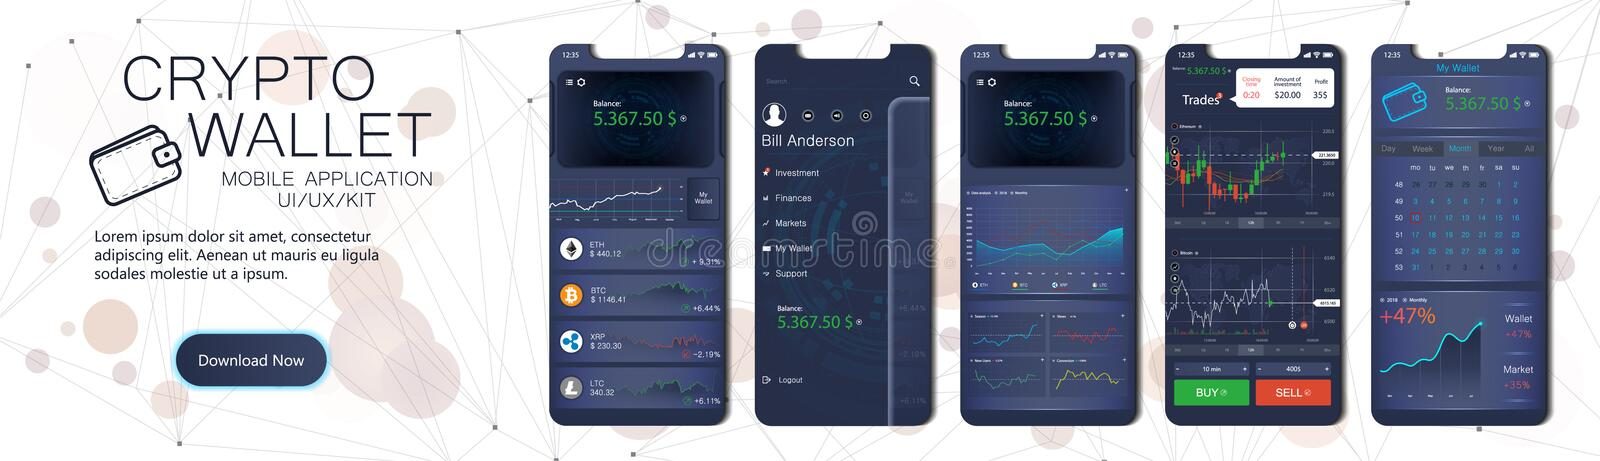 Calibre mobile d'appli de crypto portefeuille illustration libre de droits